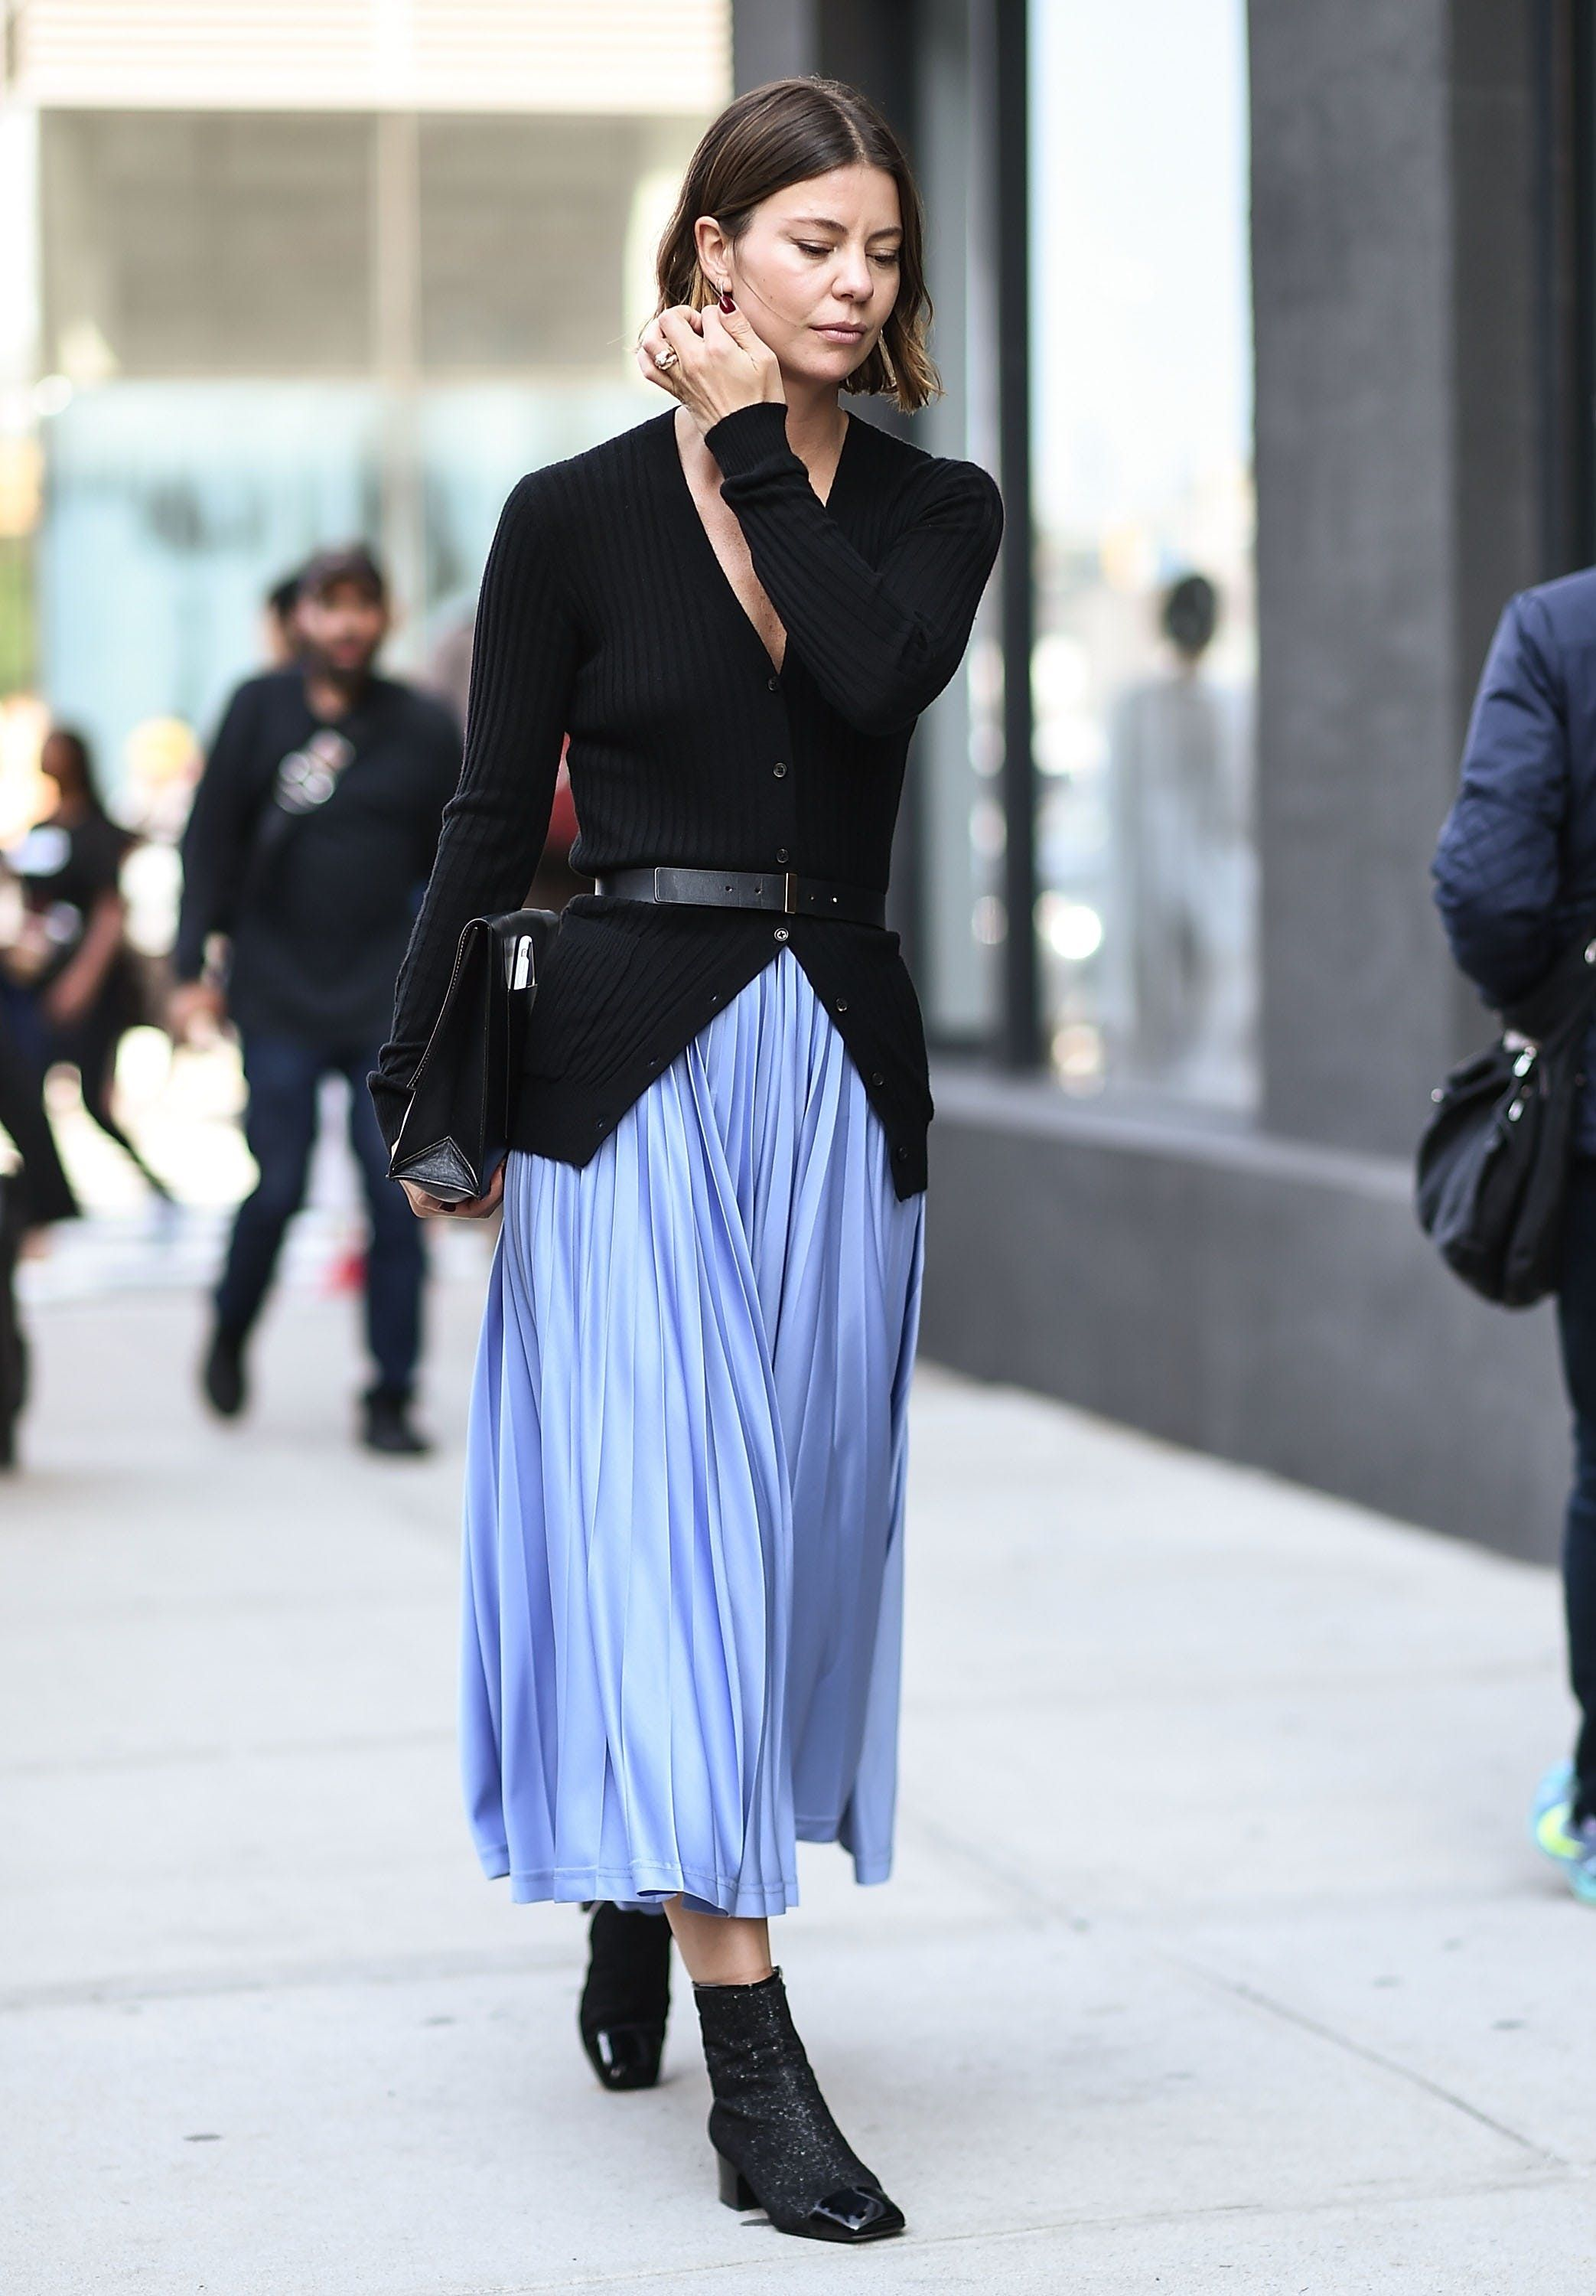 d3b47a9afe04 31 Ways to Shake Up Your Style This October | Style I Love ...